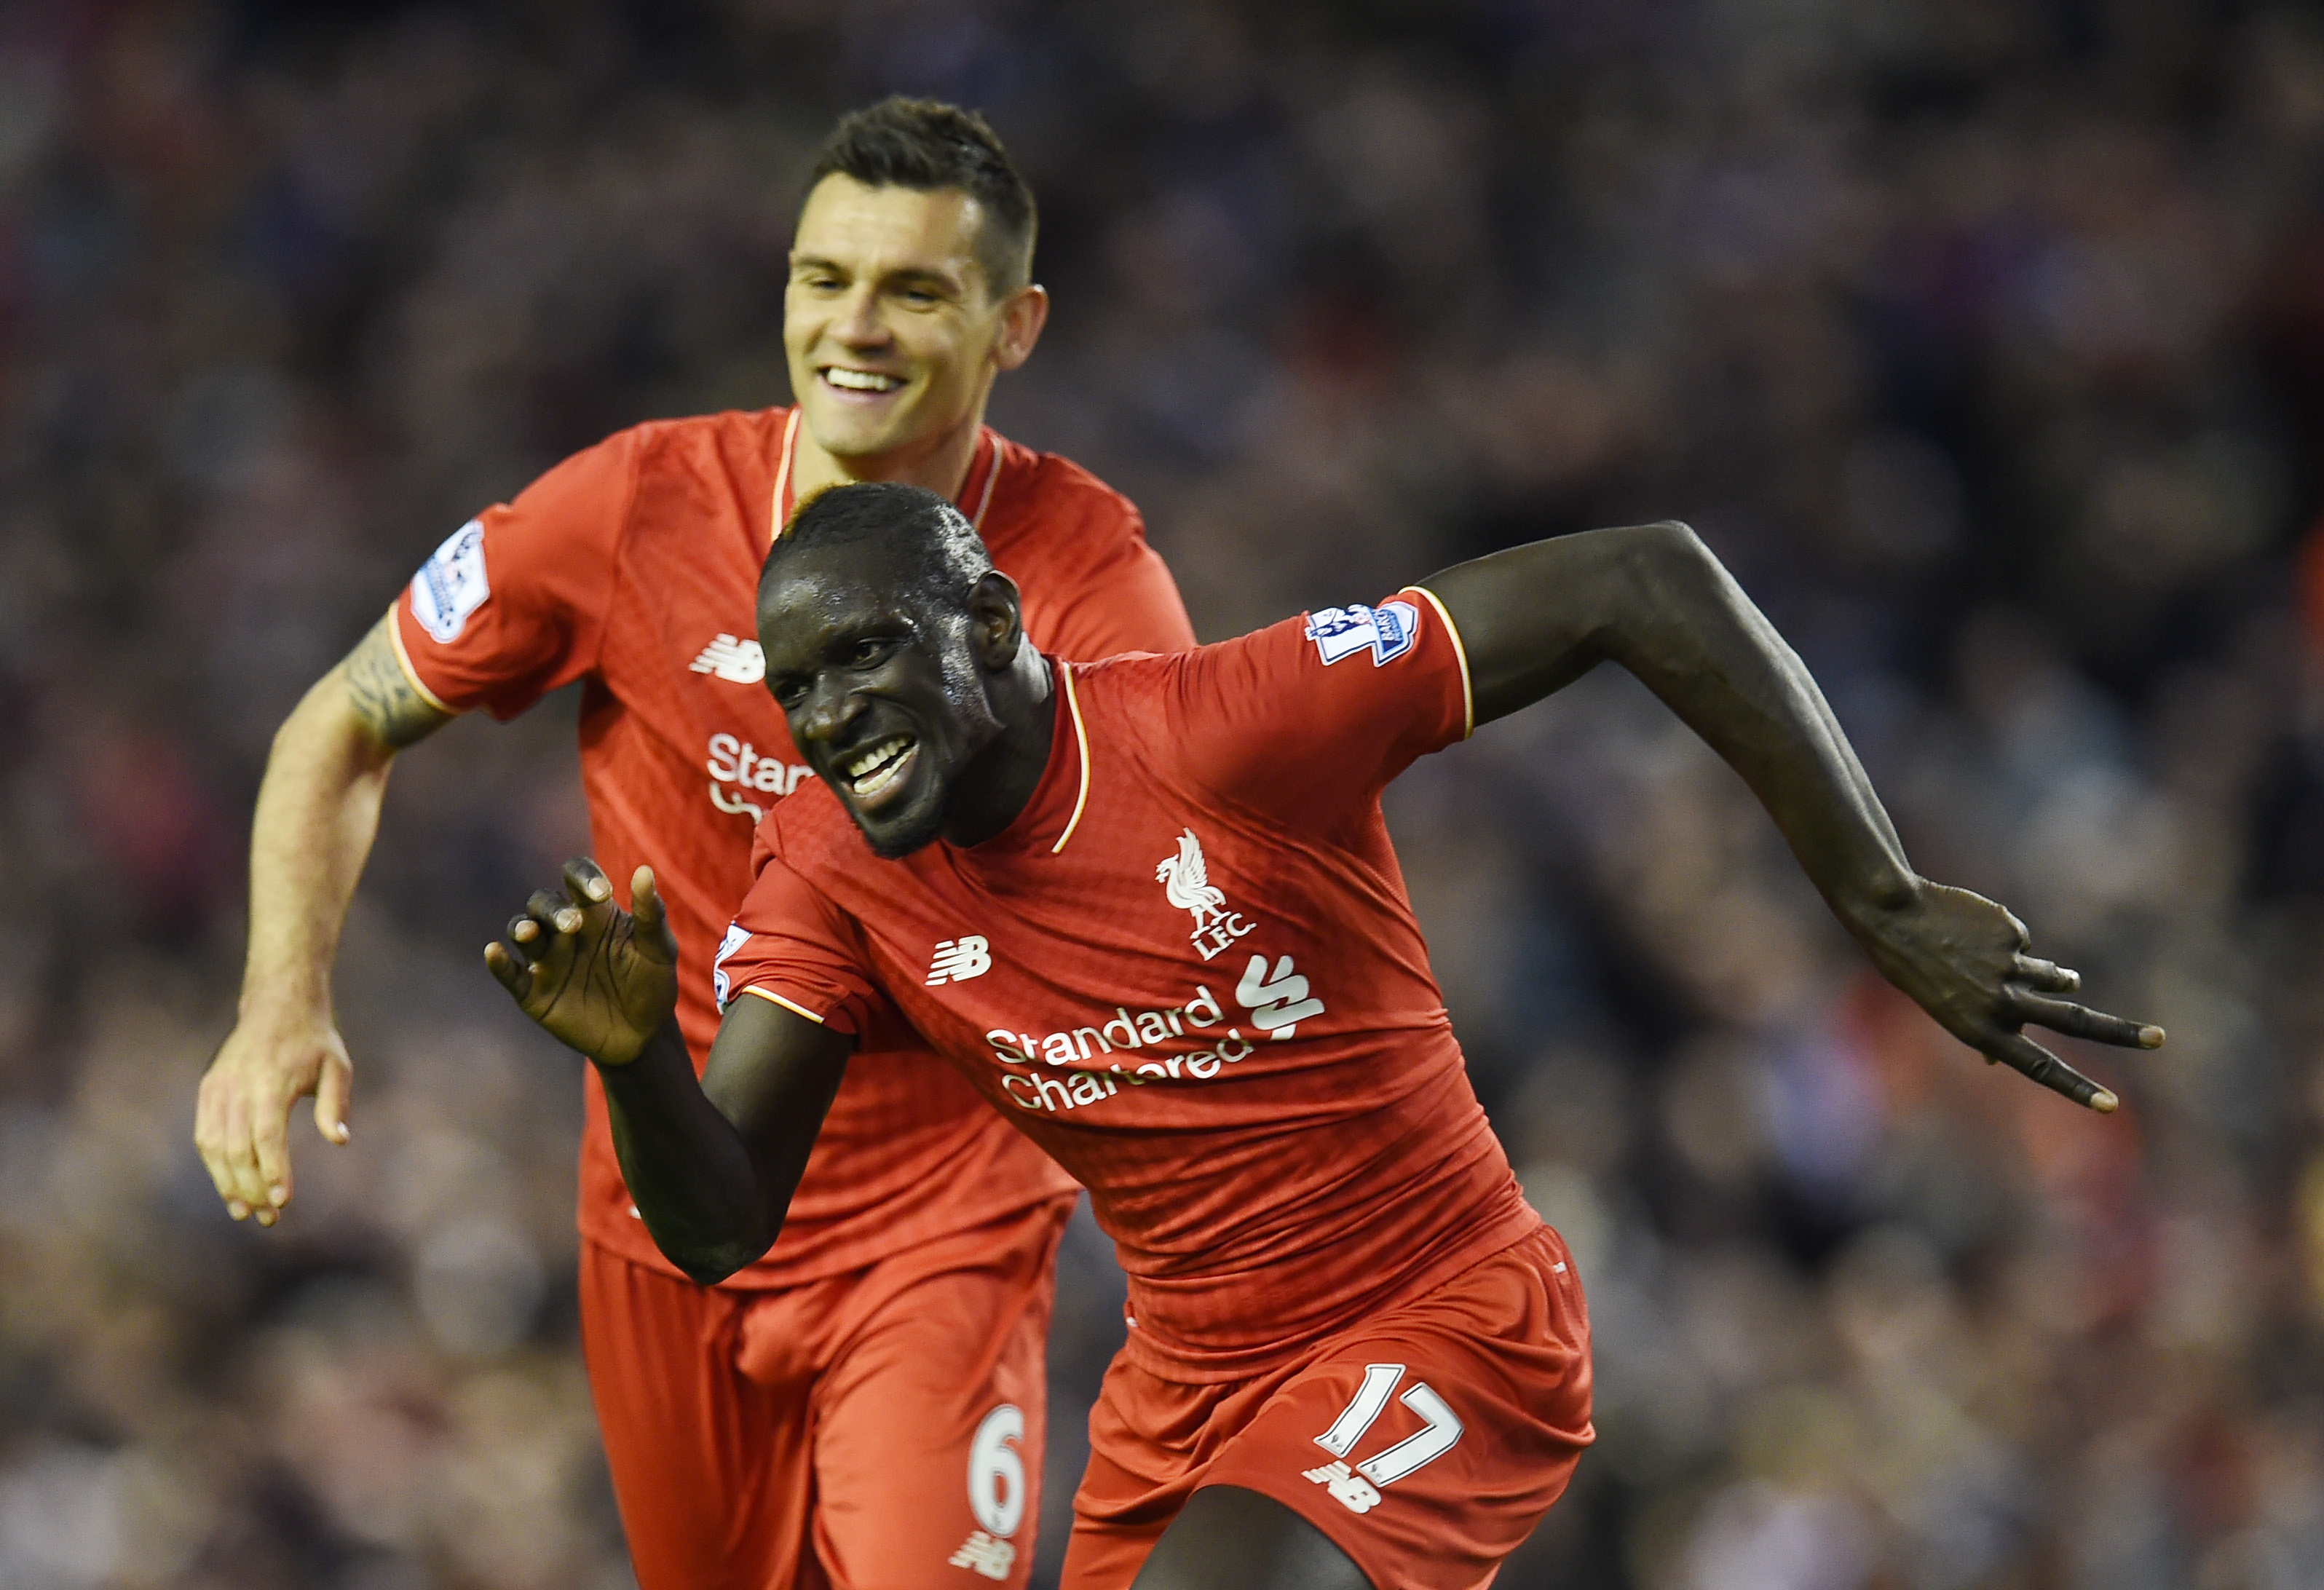 Liverpool injury news: Mamadou Sakho drugs test latest, Emre Can dreams of Euro 2016, Danny Ings nears return